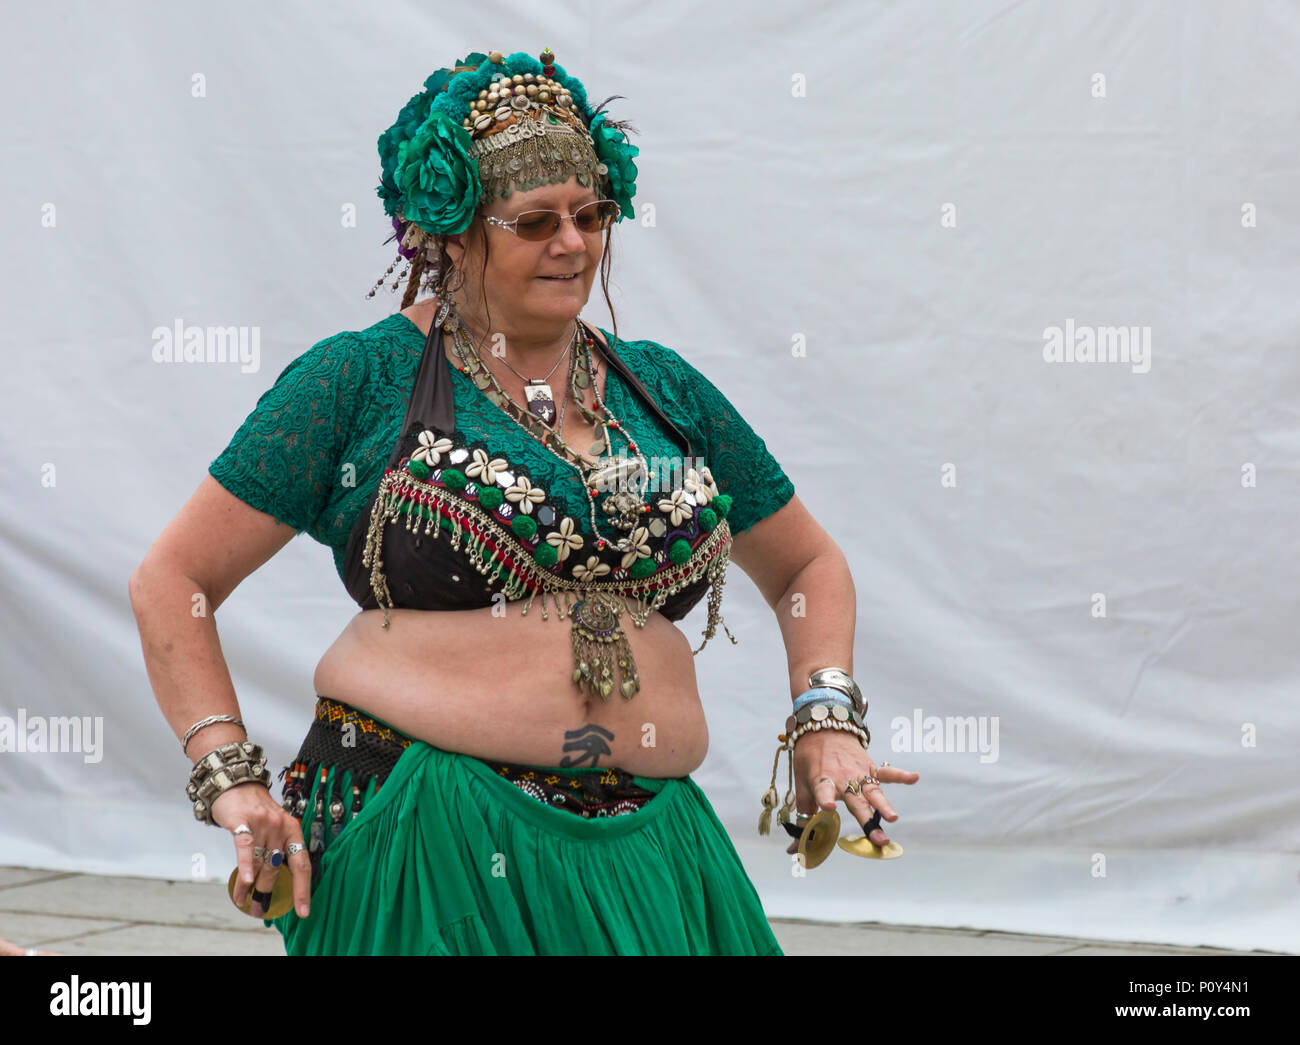 Mature women belly dancer